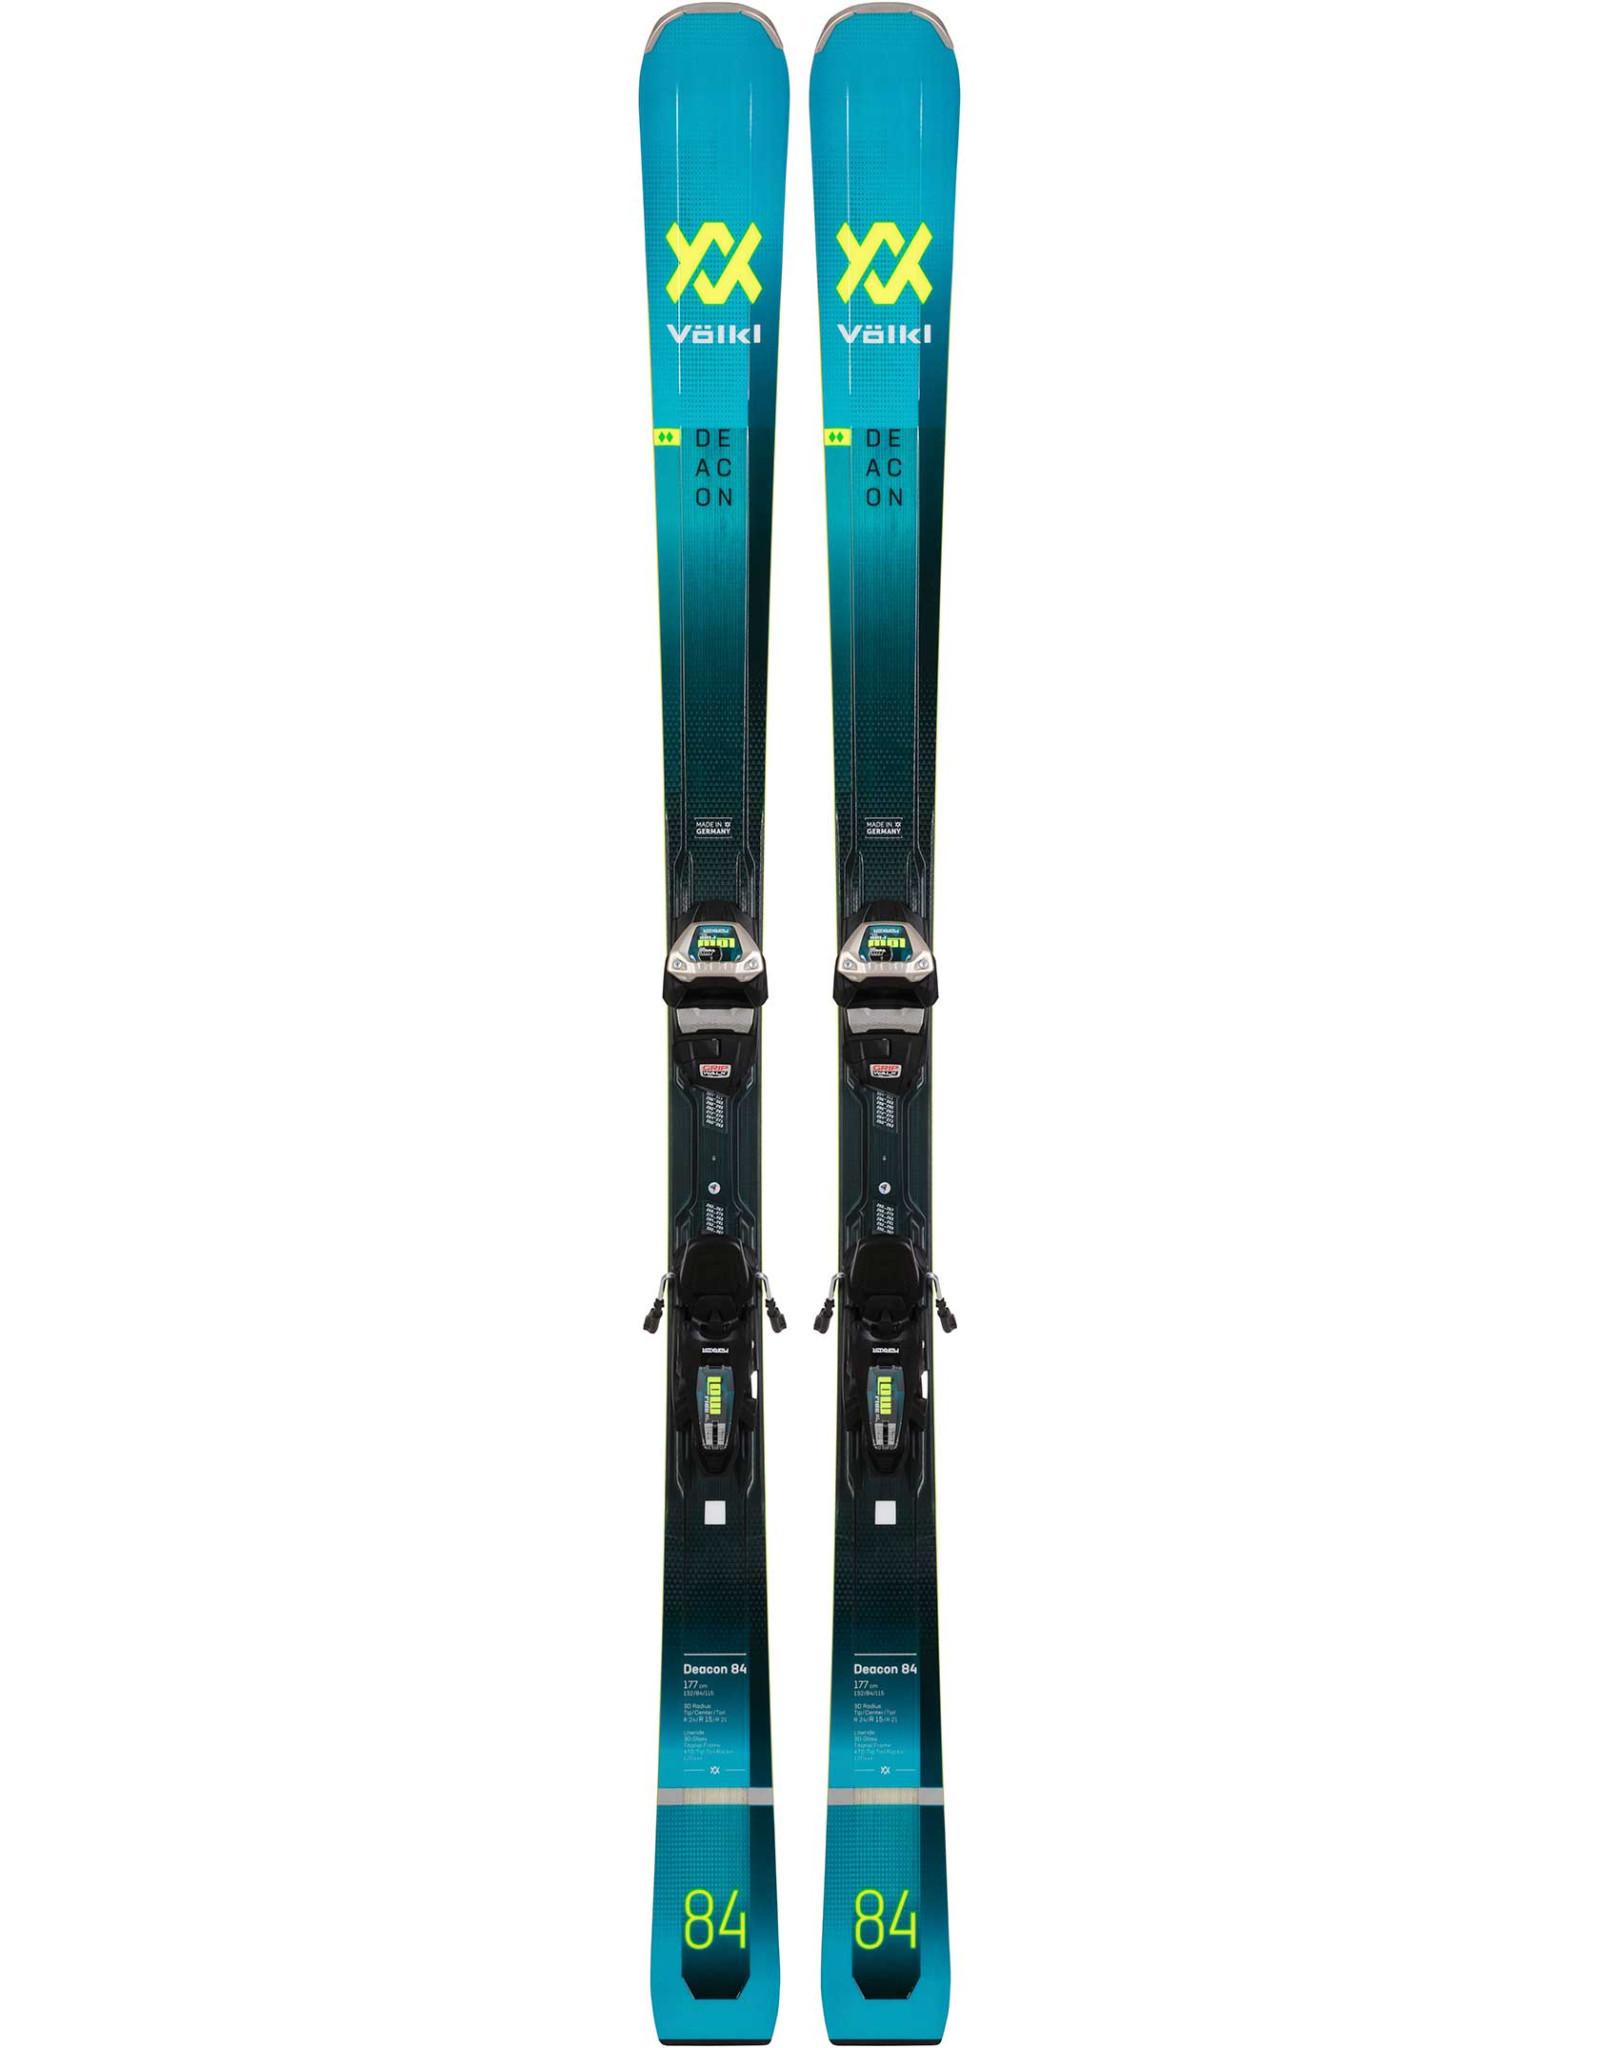 VOLKL VOLKL Skis DEACON 84 + Lowride XL 13 FR Demo GW Binding (20/21)